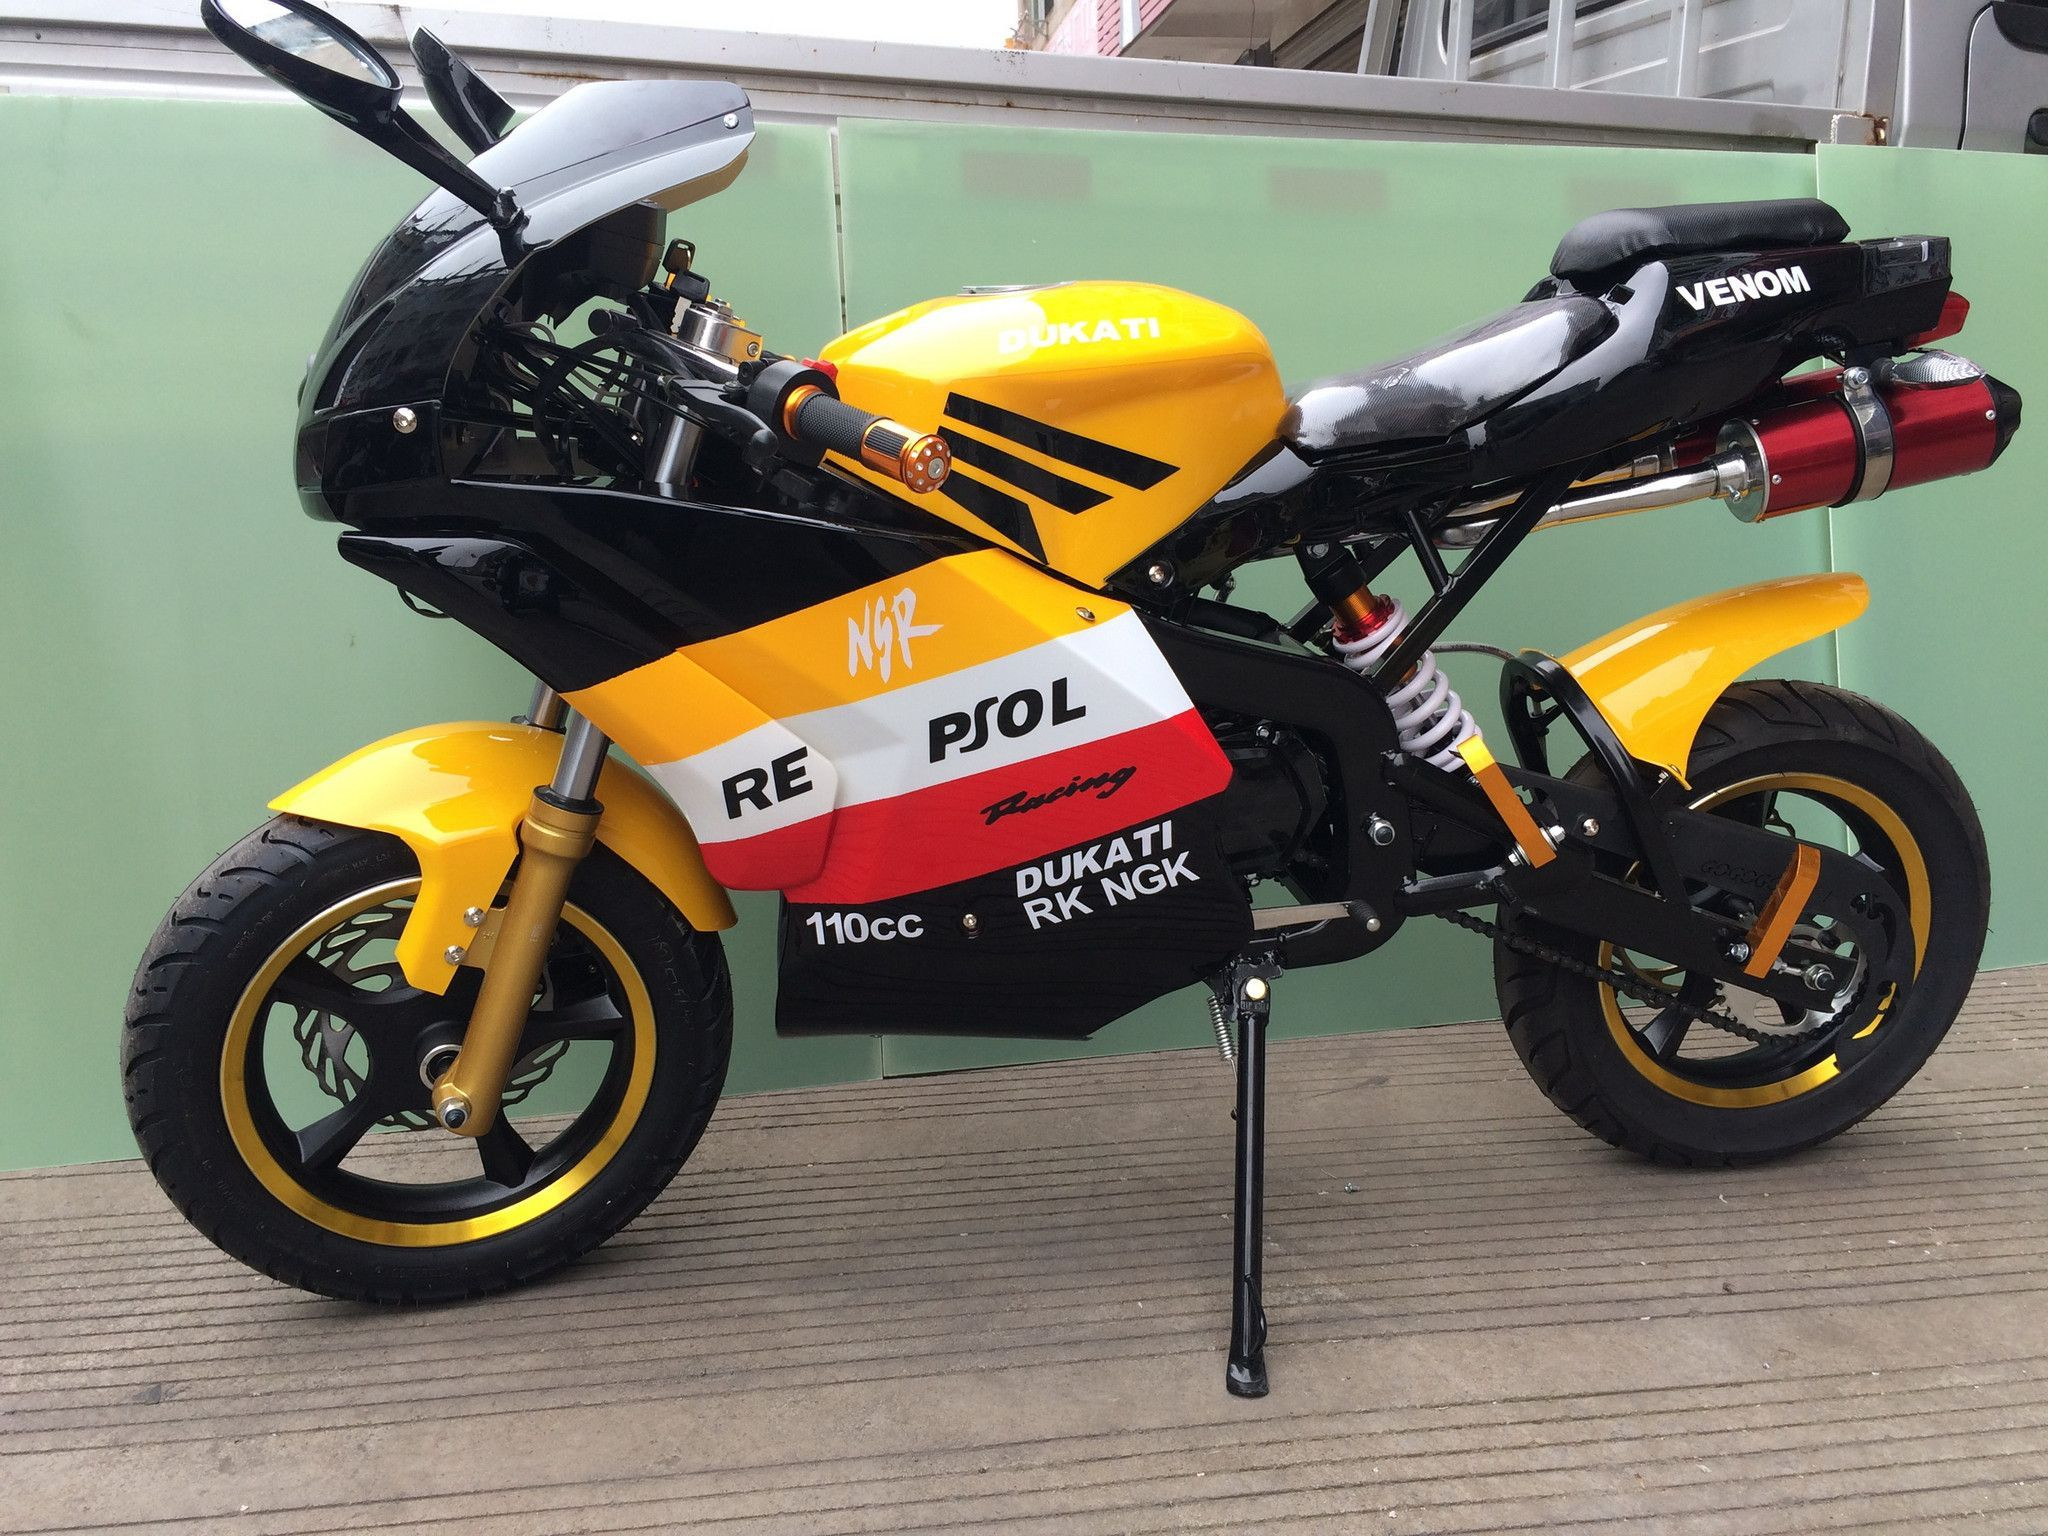 Super pocket bike x19 4 gears 2016 repsol limited edition moped 125cc x19 super pocket bike 4 gears 2016 repsol limited edition freerunsca Images